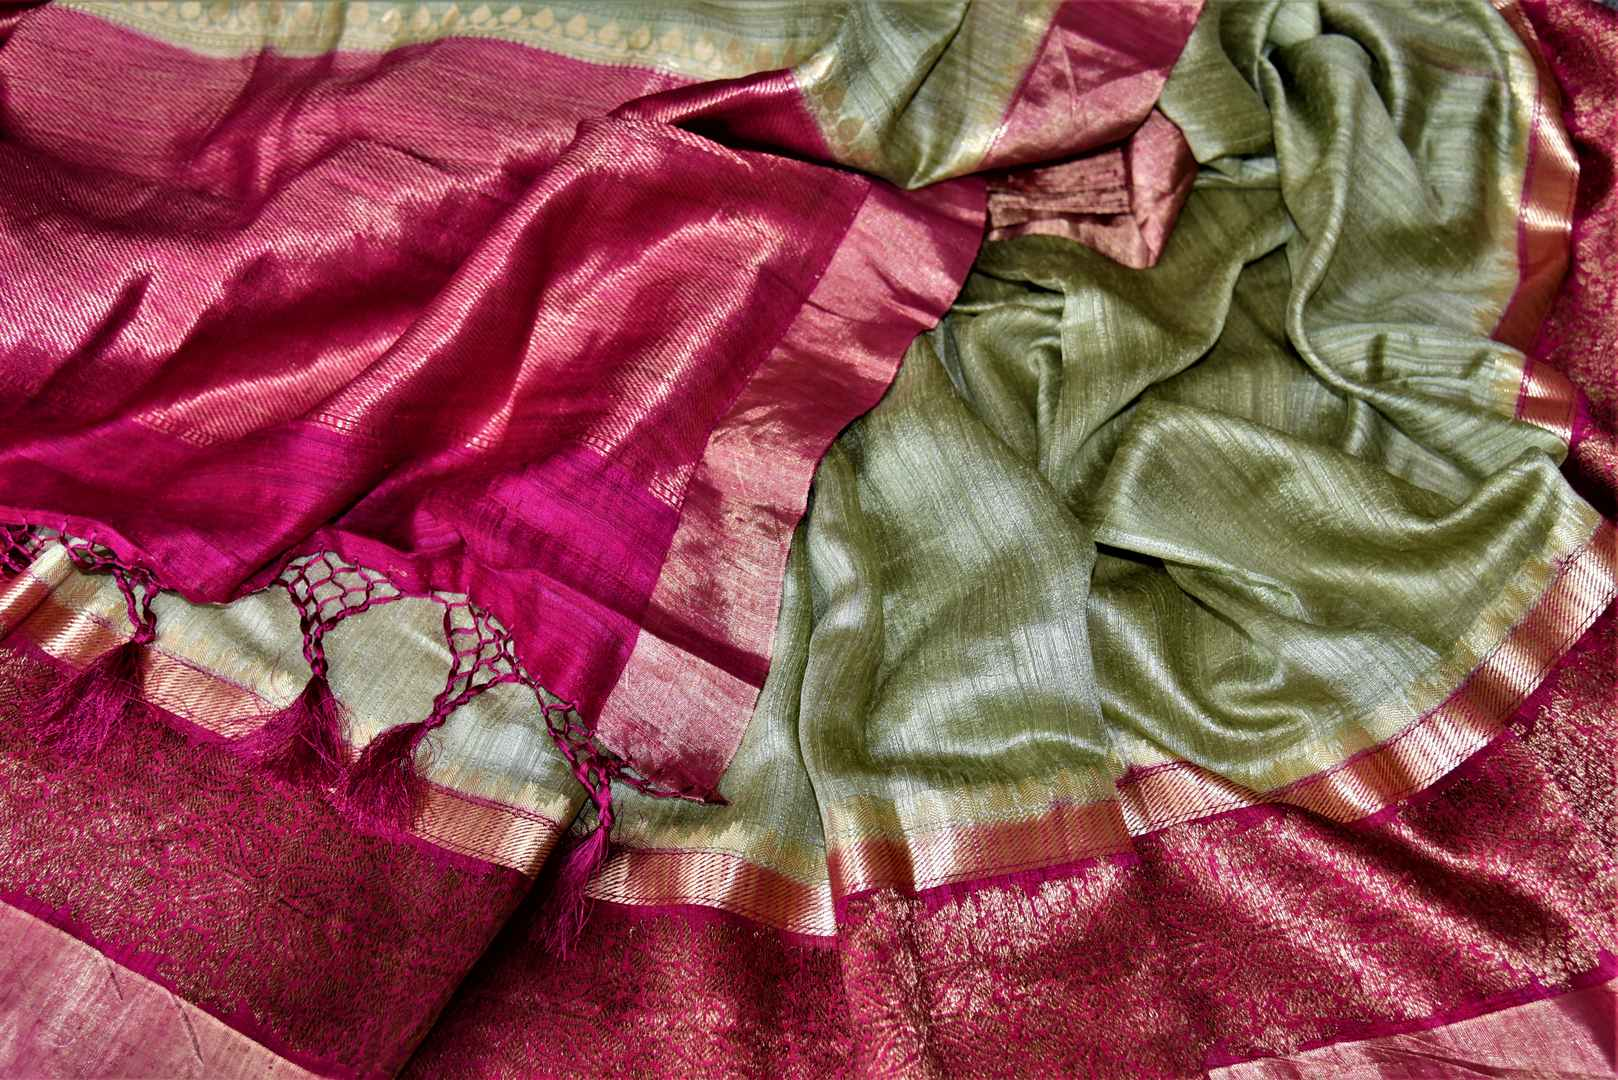 Shop beautiful mint green tussar Banarsi saree online in USA with pink antique zari border. Choose tasteful handloom sarees for special occasions from Pure Elegance. Our exclusive Indian fashion store has a myriad of exquisite pure silk saris, tussar sarees, Banarasi sarees for Indian women in USA.-details